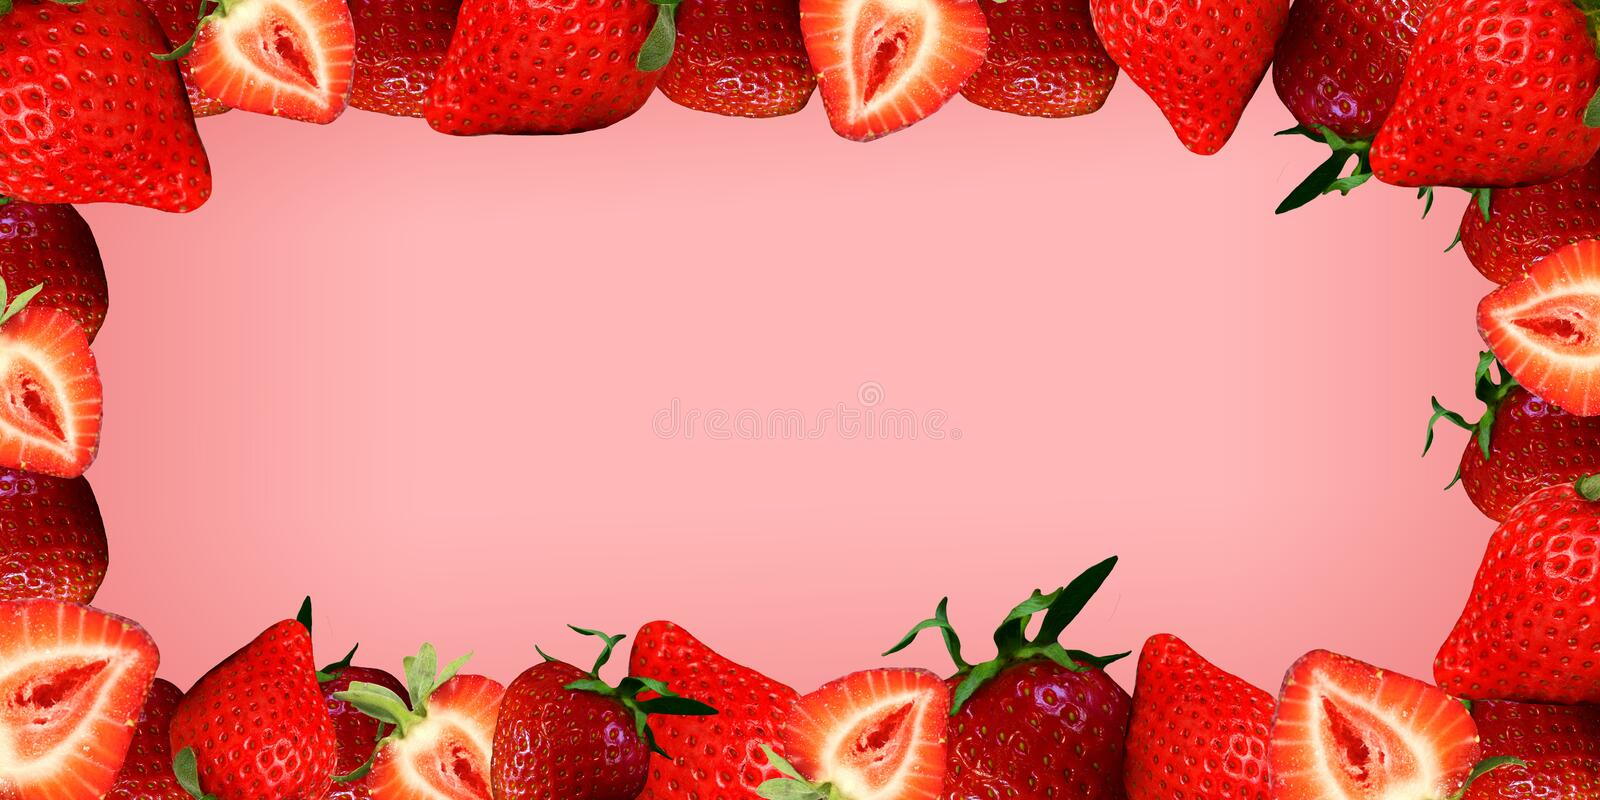 Juicy strawberry style on a pink background royalty free stock photography